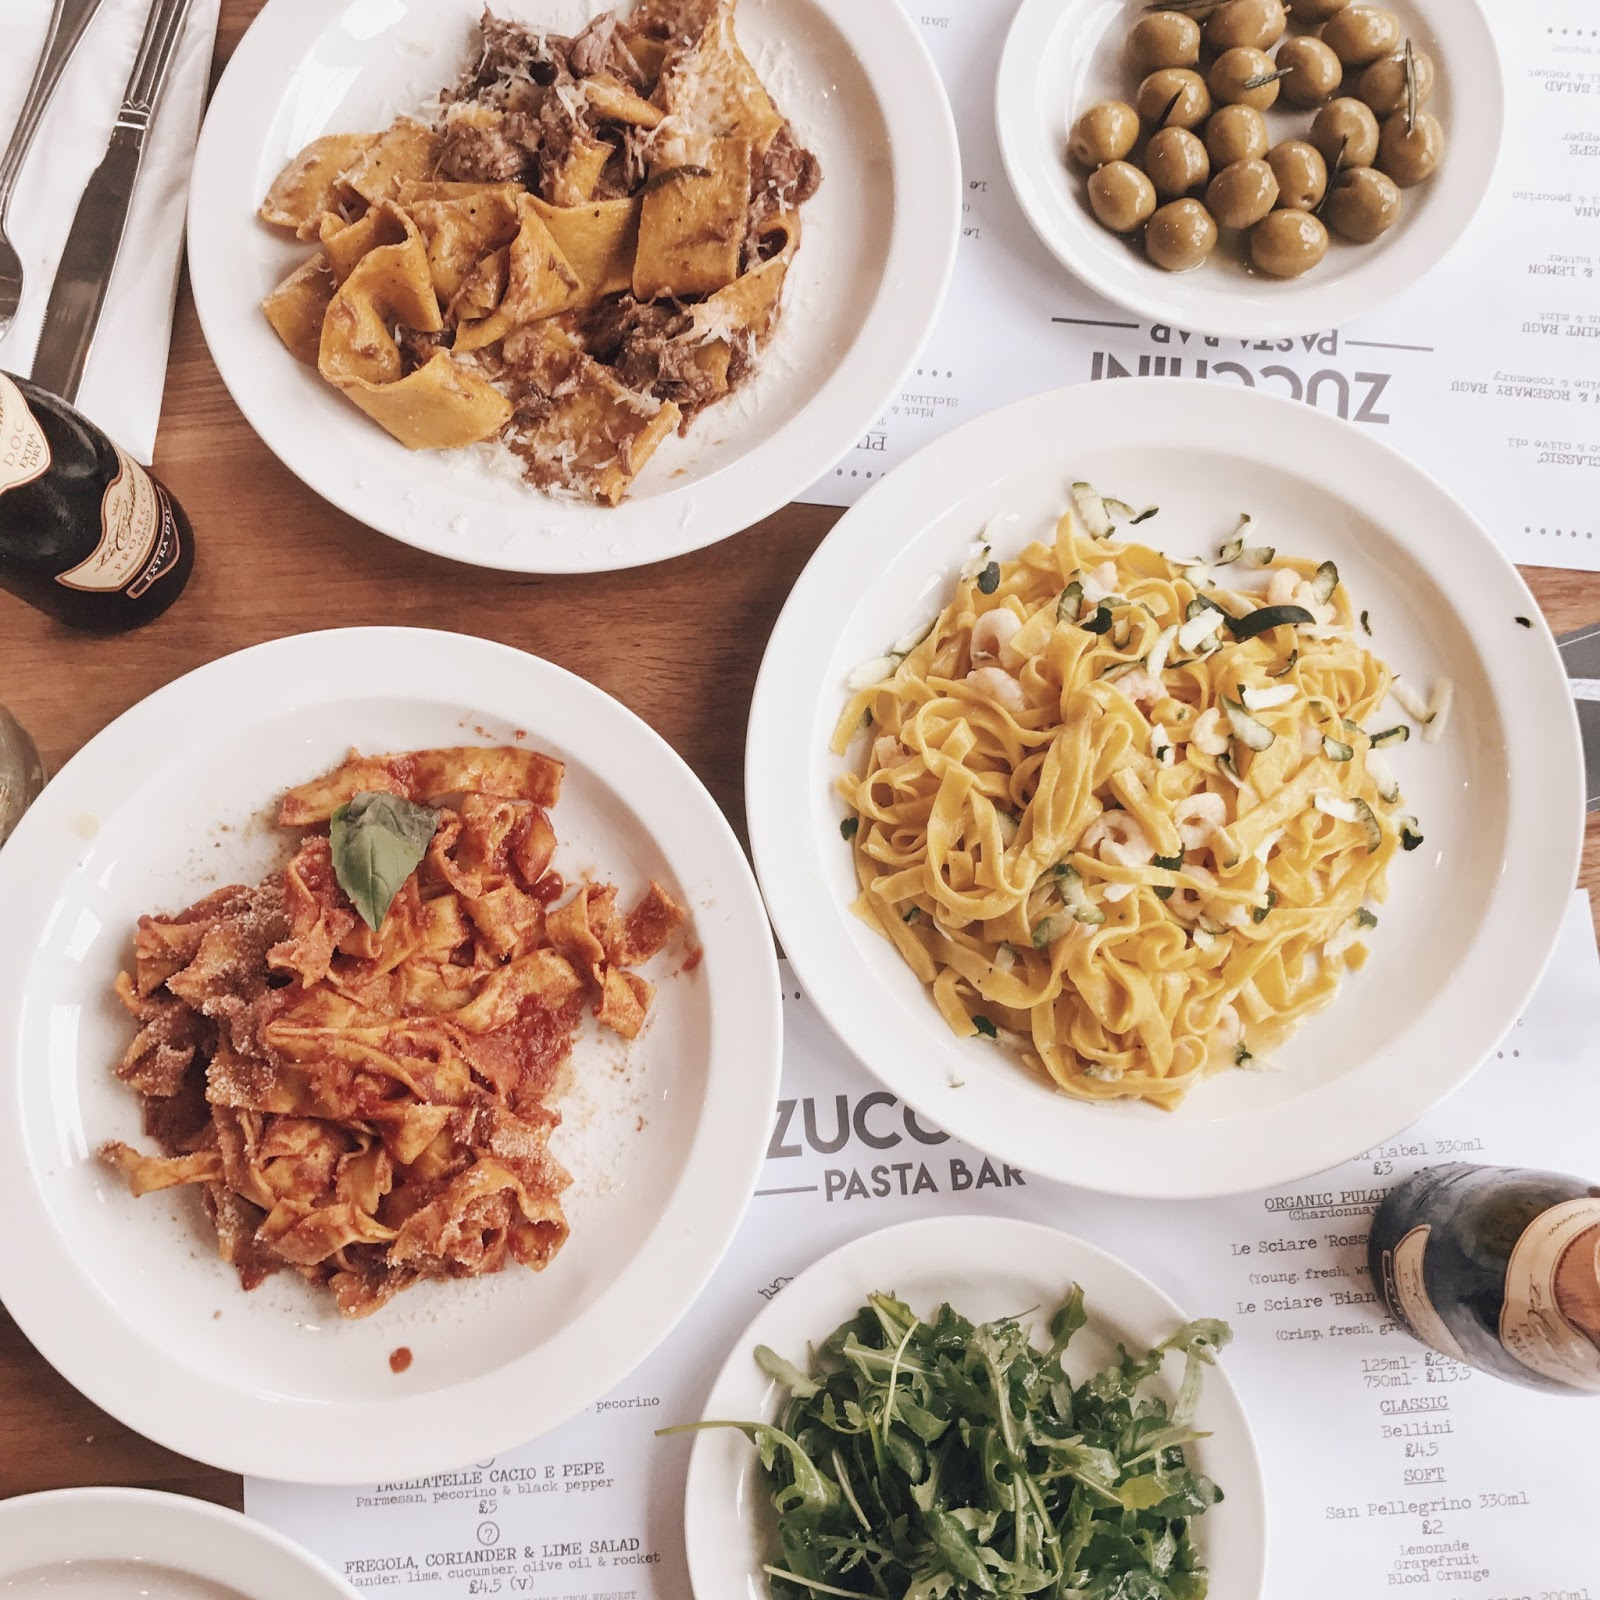 Food: Introducing Zucchini Pasta Bar, Newcastle